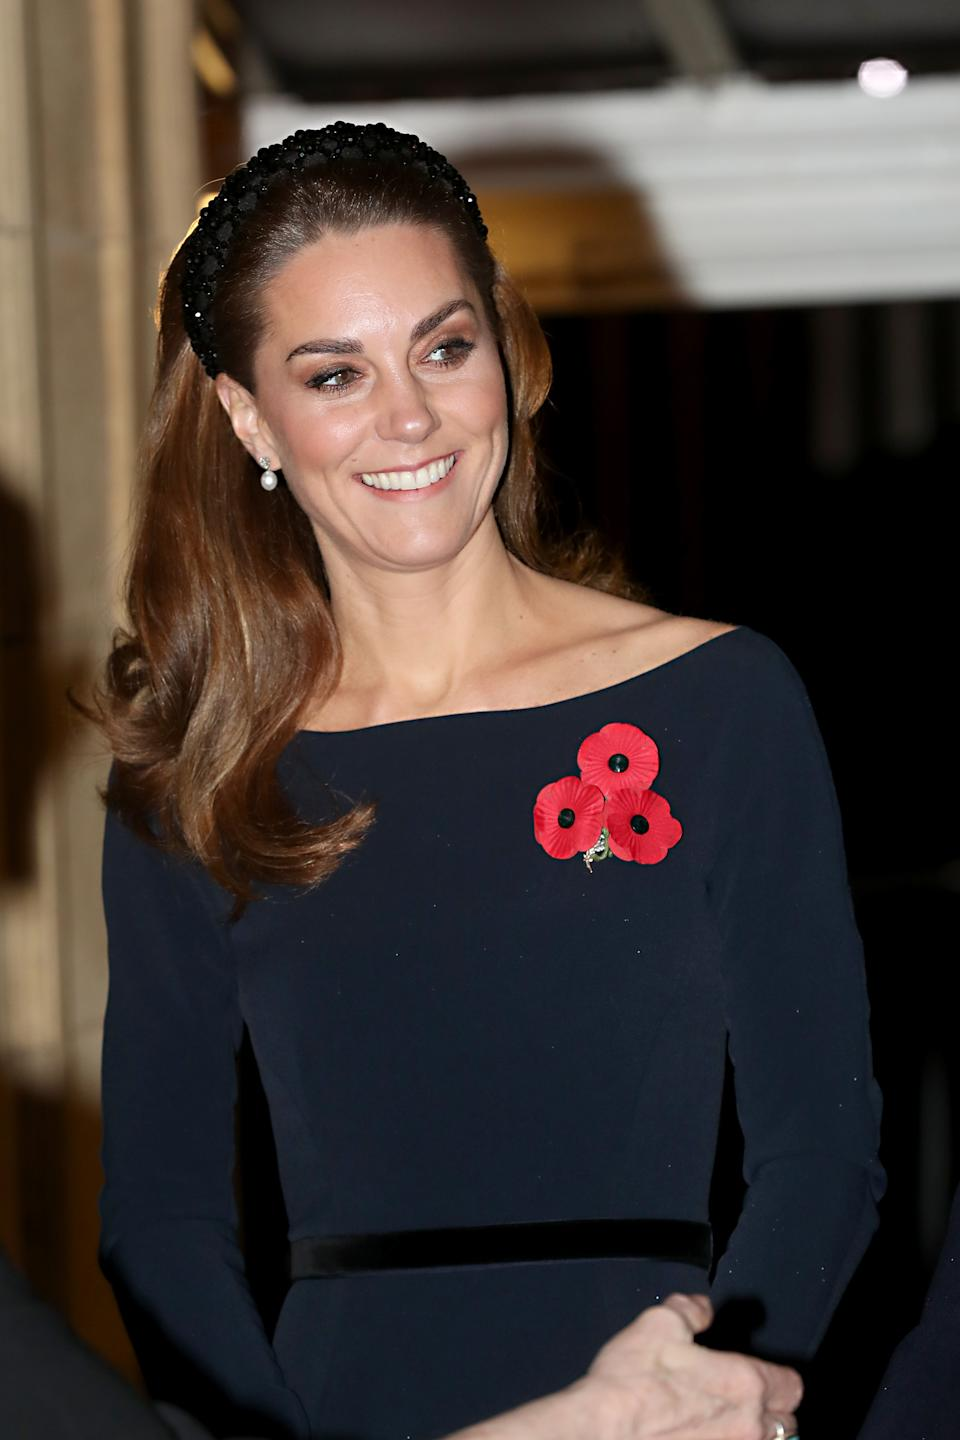 The Duchess of Cambridge's affordable headband received praise online [Image: Getty]